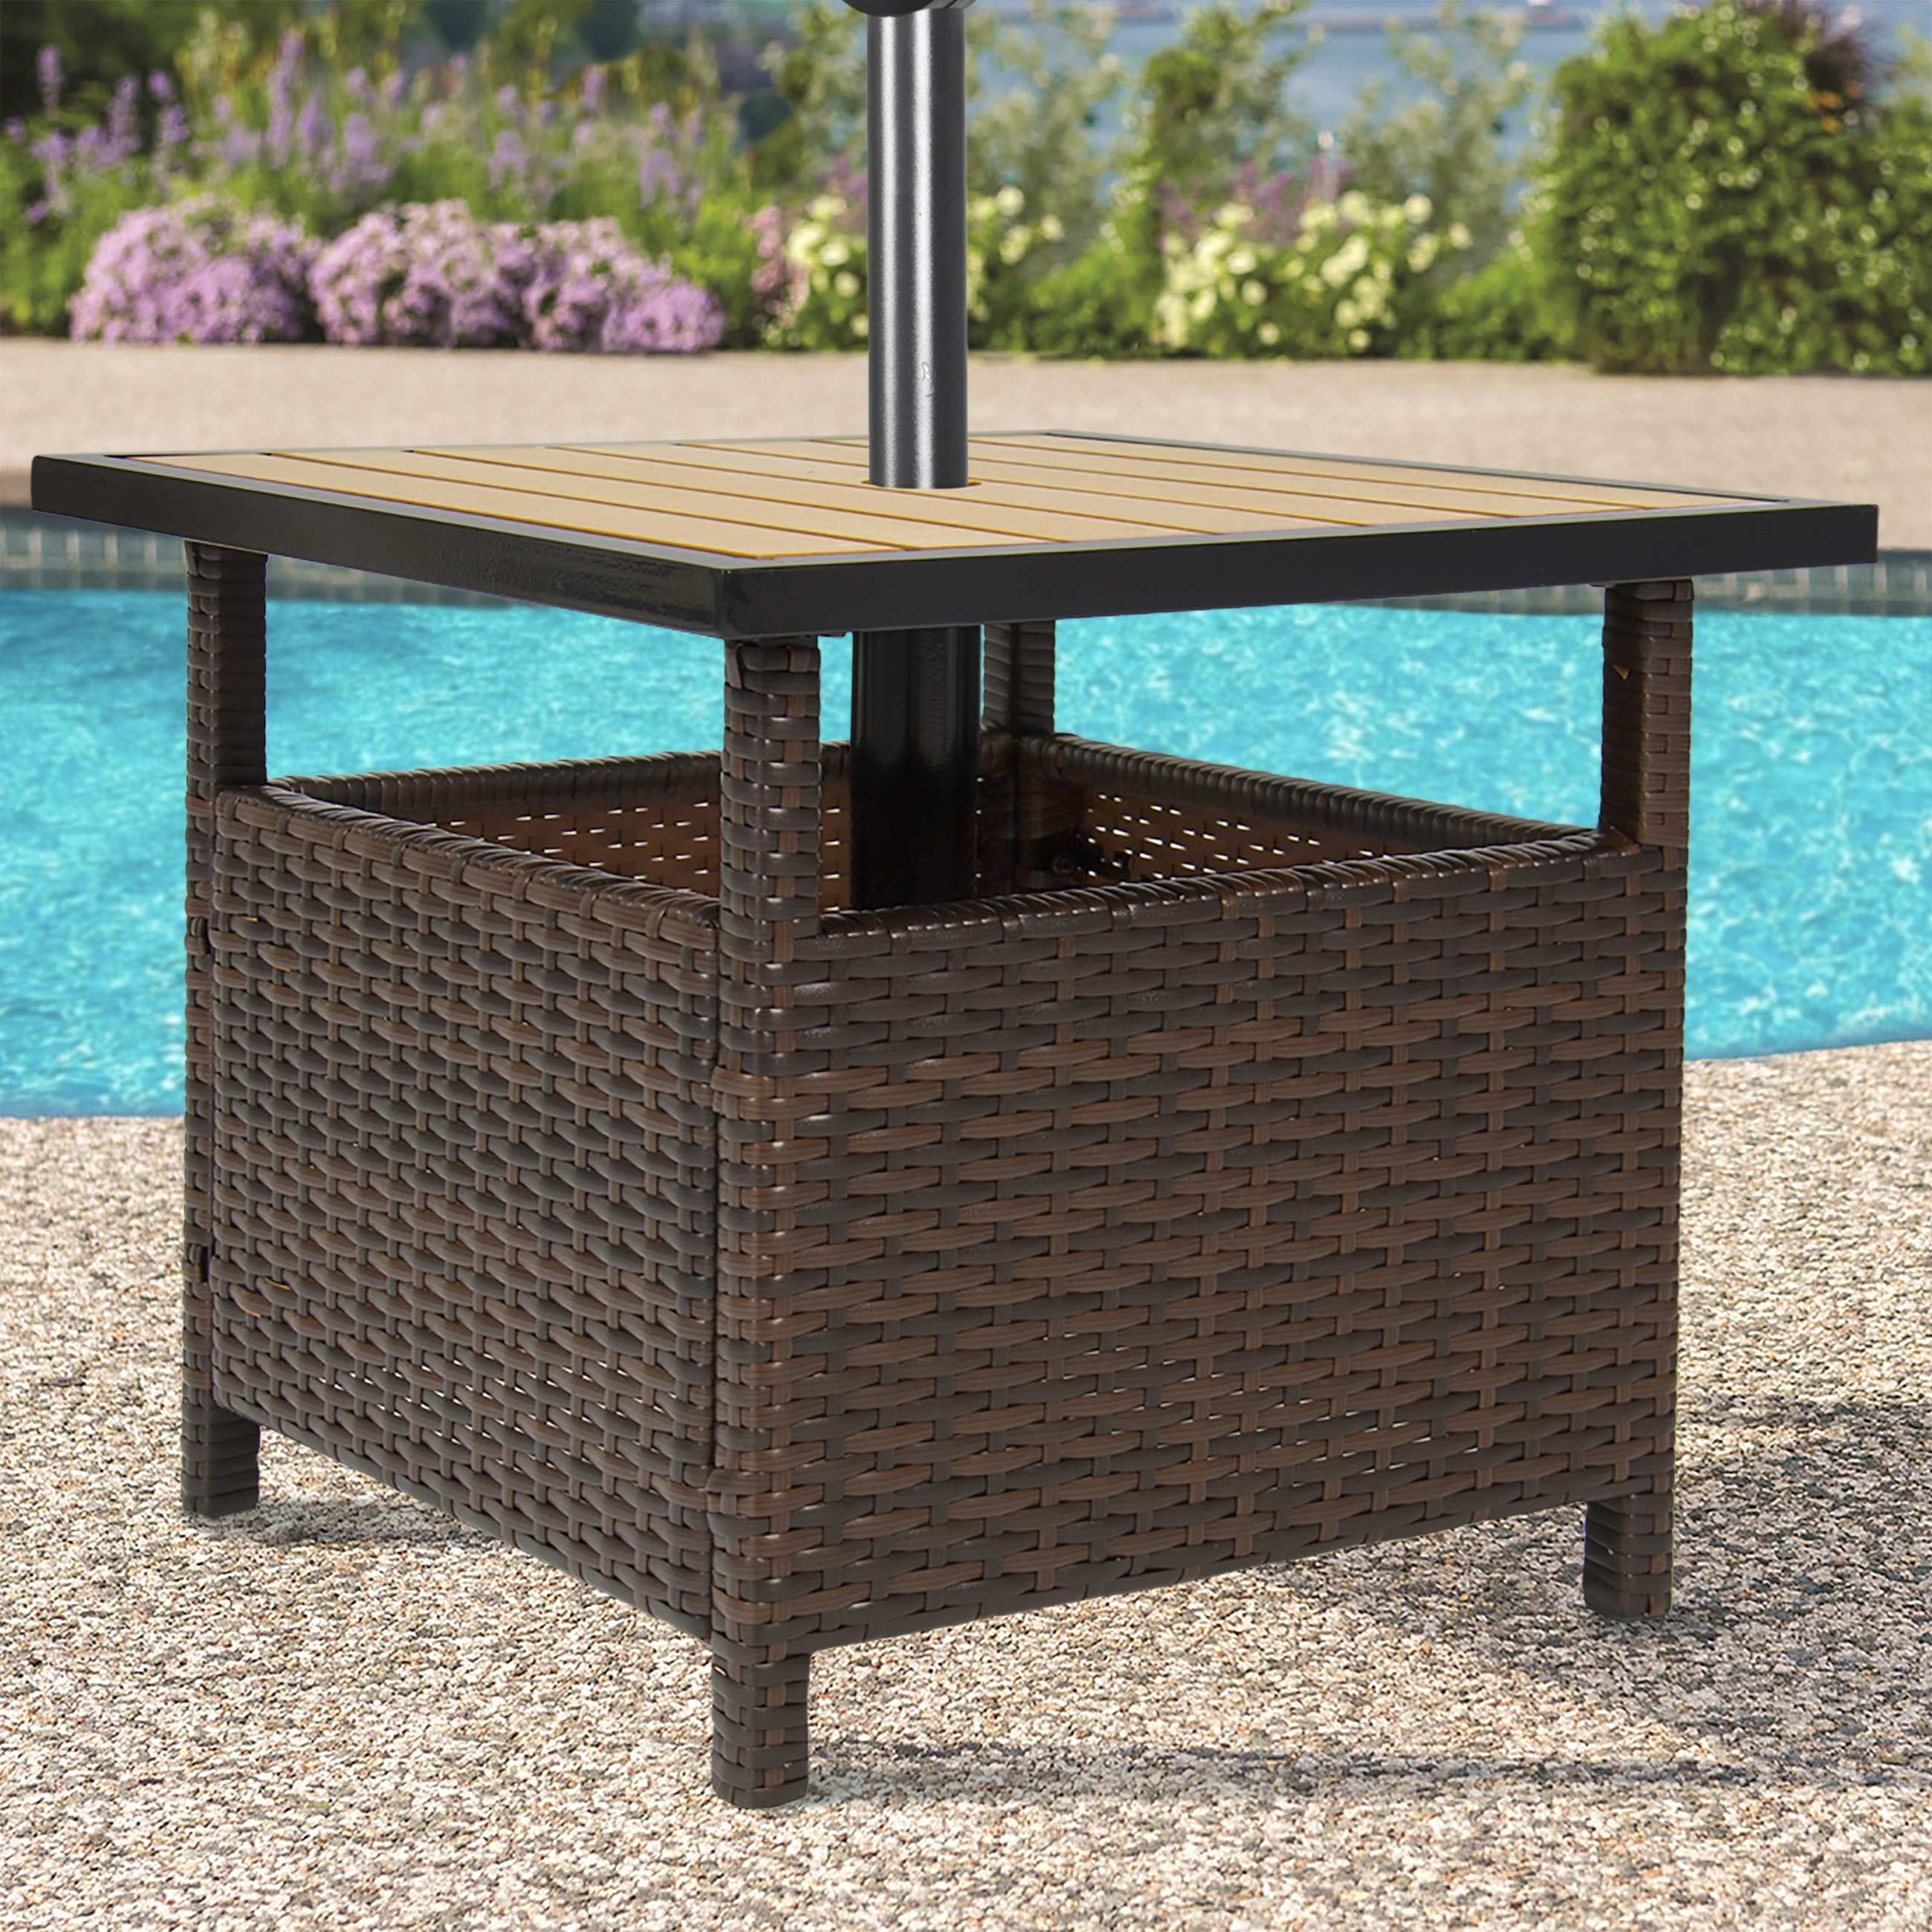 unique patio umbrella side table outdoor coffee with stand little more decorative the home hole west elm weatherproof garden furniture ashley and chairs target room decor pottery